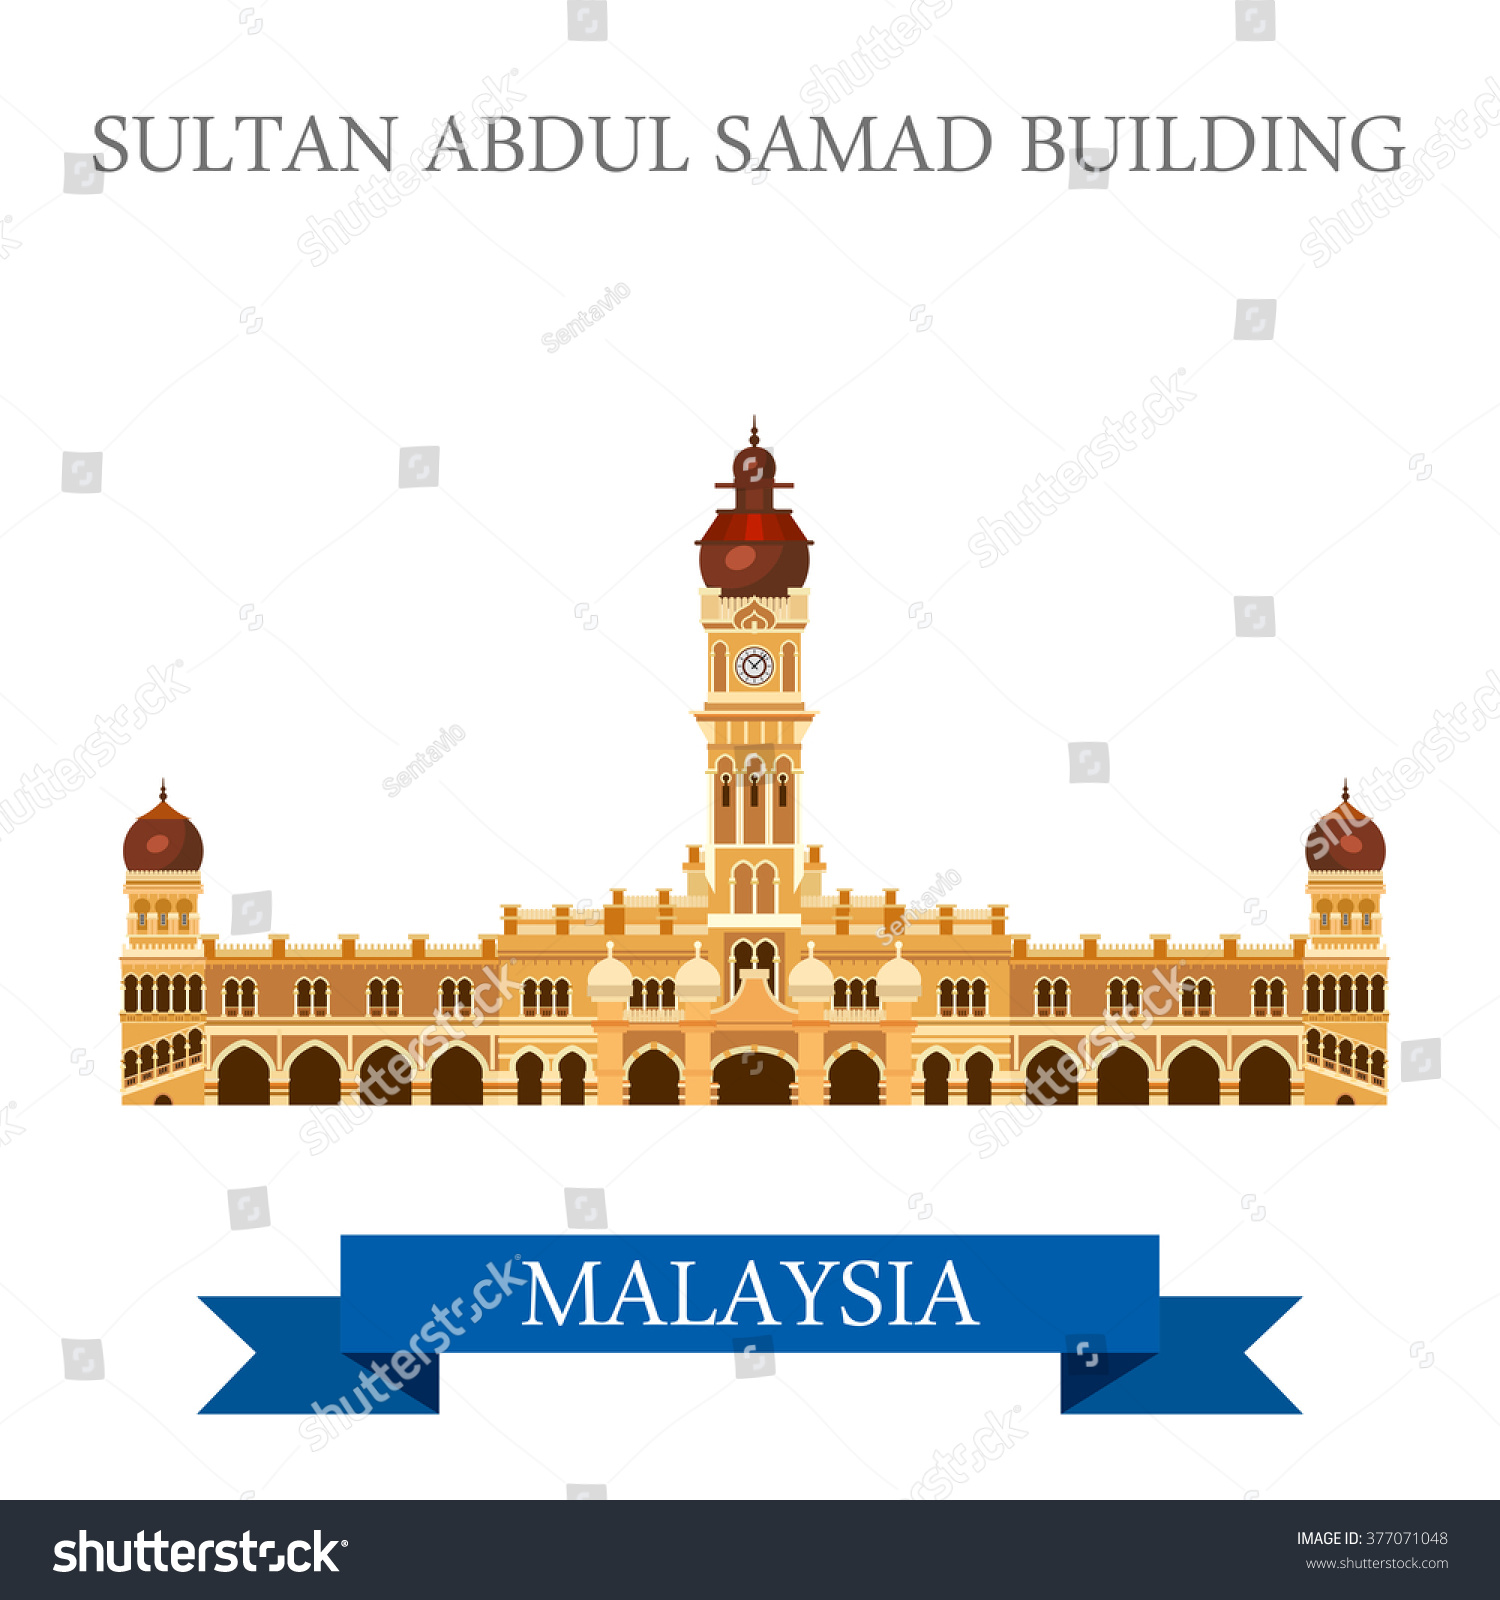 Sultan Abdul Samad Building In Malaysia Flat Cartoon Style Historic Sight Showplace Attraction Web Site